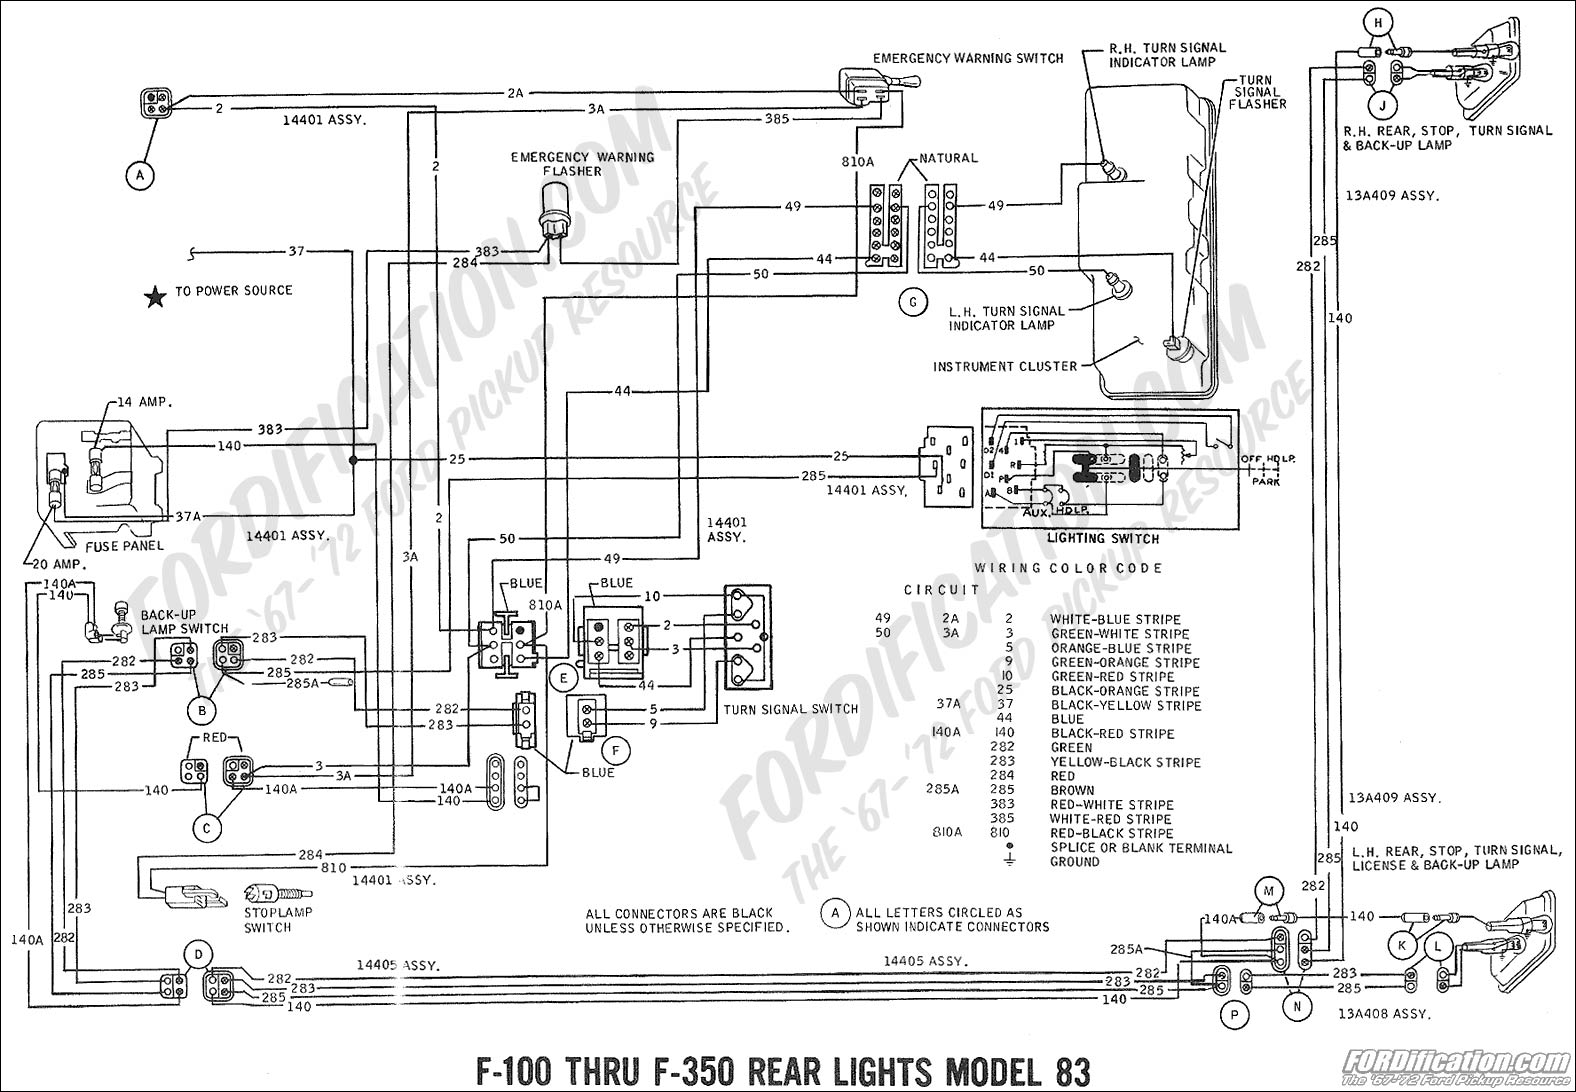 1998 Mitsubishi Mirage Fuse Box Diagram furthermore 1986 Jeep  anche Chasis 2 Of 2 Large besides Schematics h also 96 Yamaha Warrior Wiring Diagram additionally Taotao 49cc 4 Wheeler Engine Diagram. on cadillac wiring schematics